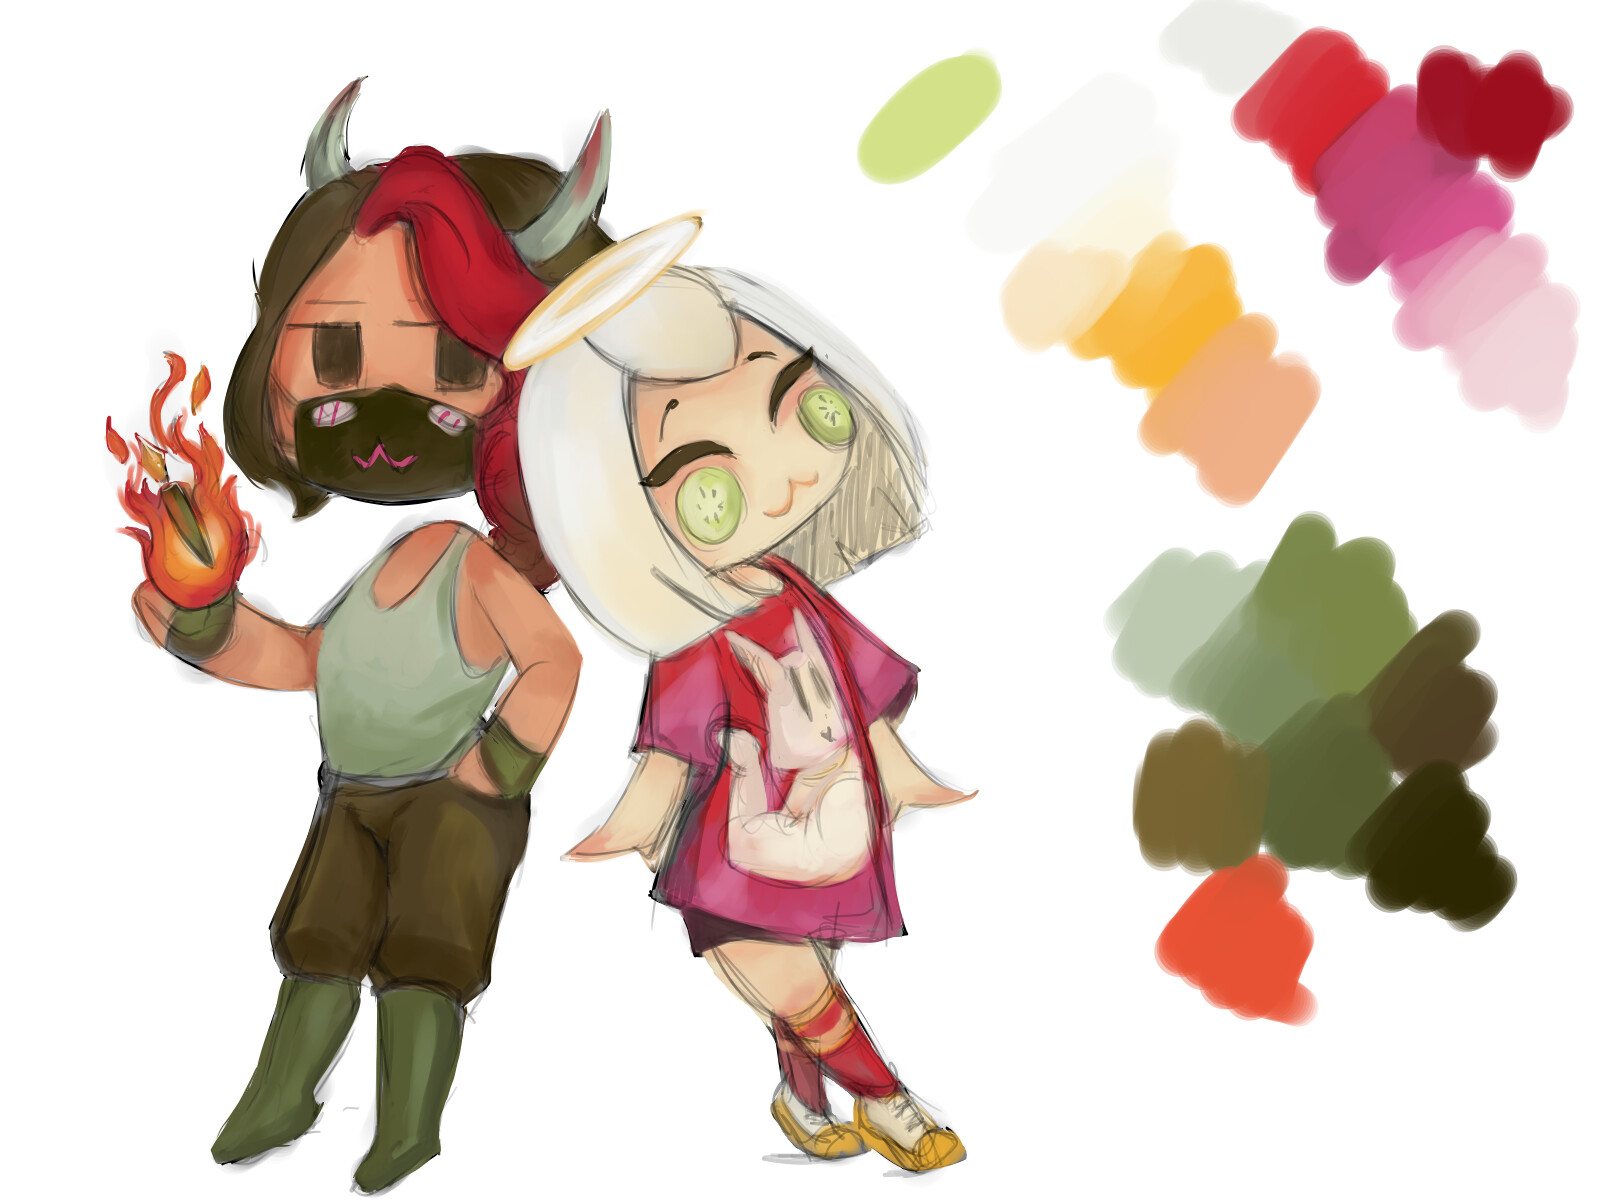 To the day I created my friend and I's avatars for our group channel where I wanted to talk about the creative writing process and game design.